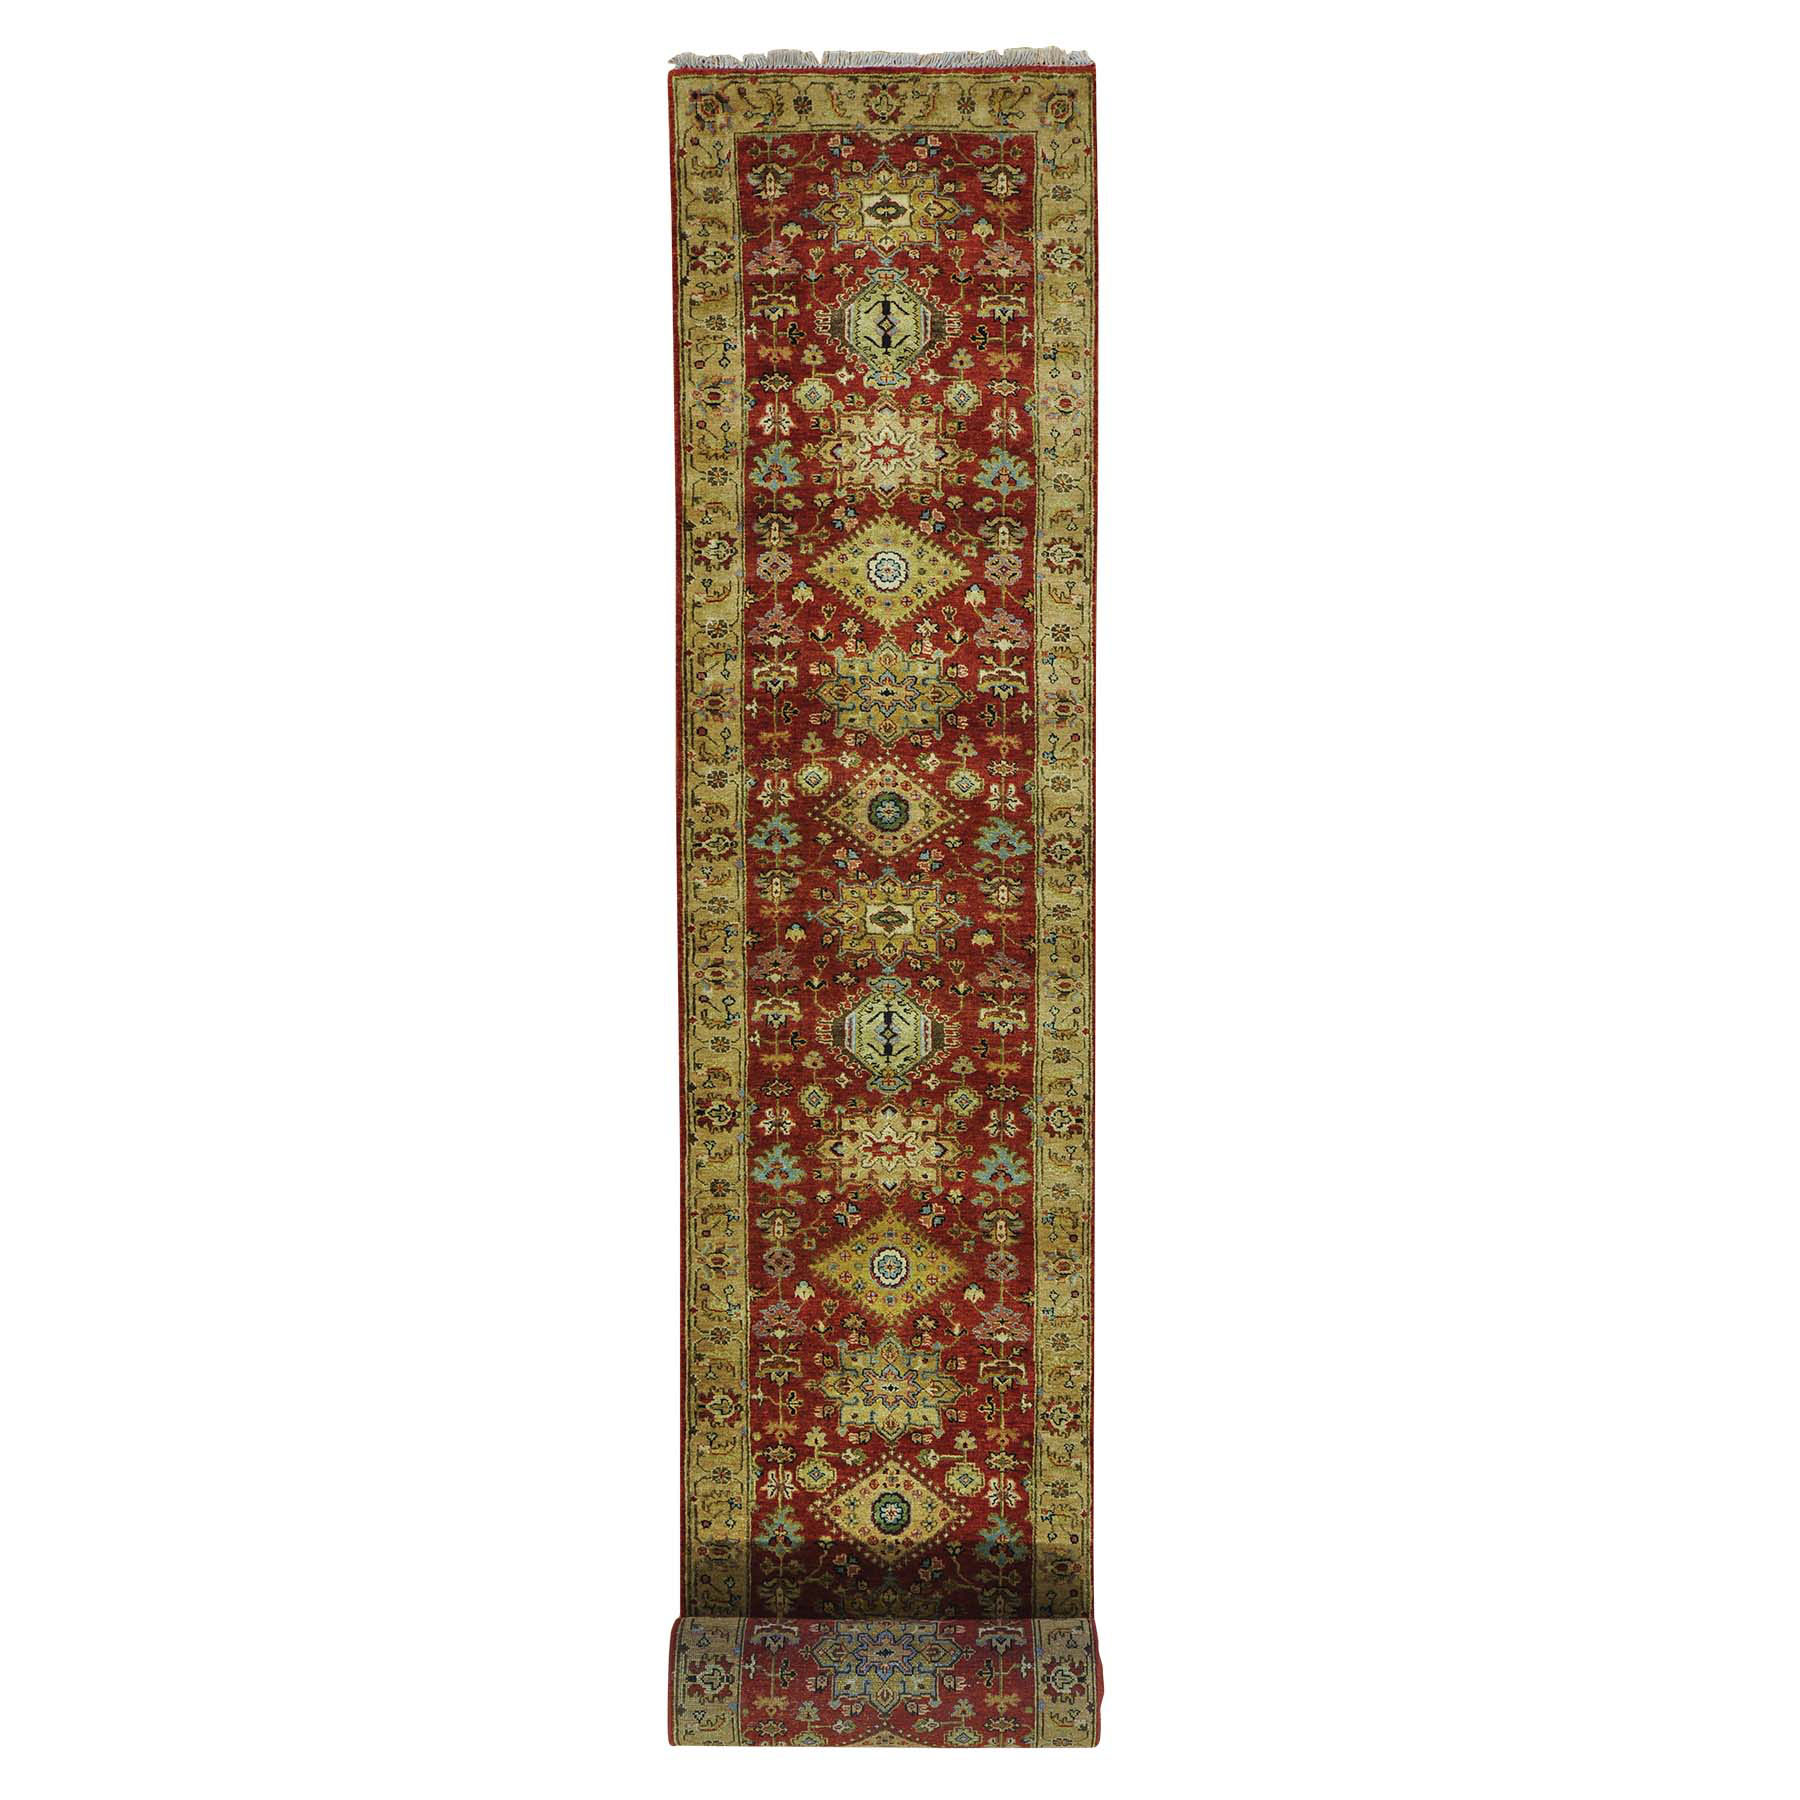 2-7 x19-10 - XL Runner Pure Wool Hand Knotted Rust Red Karajeh Oriental Rug